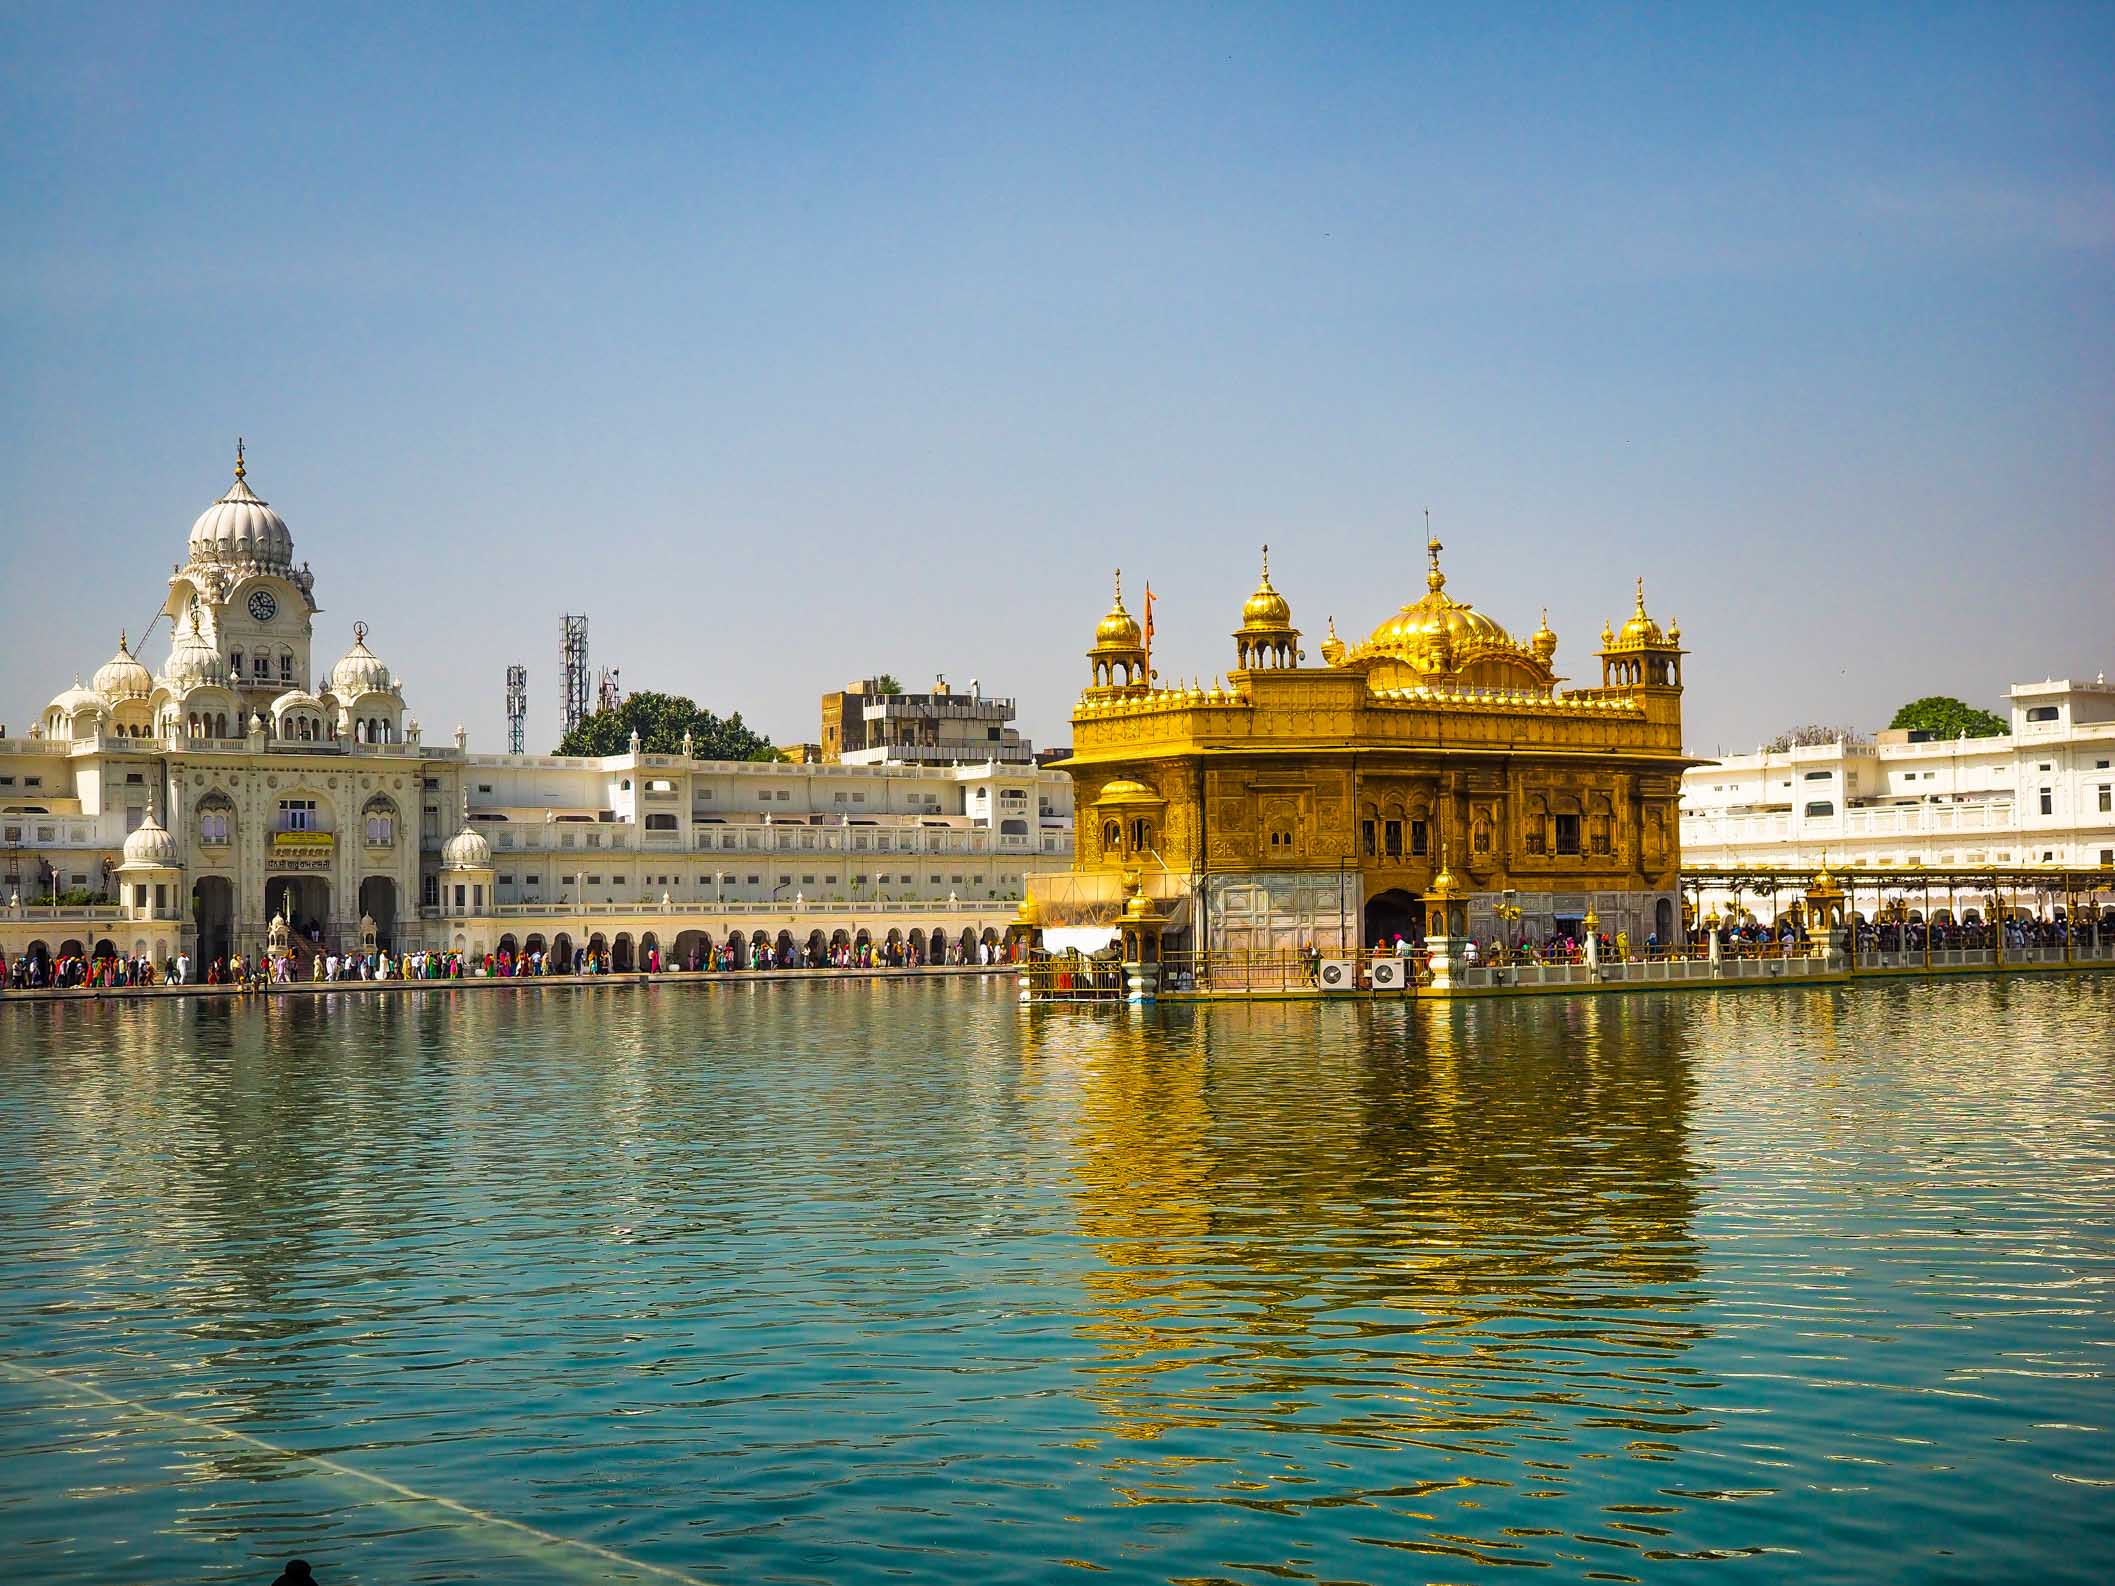 The Golden Temple of Amristar.